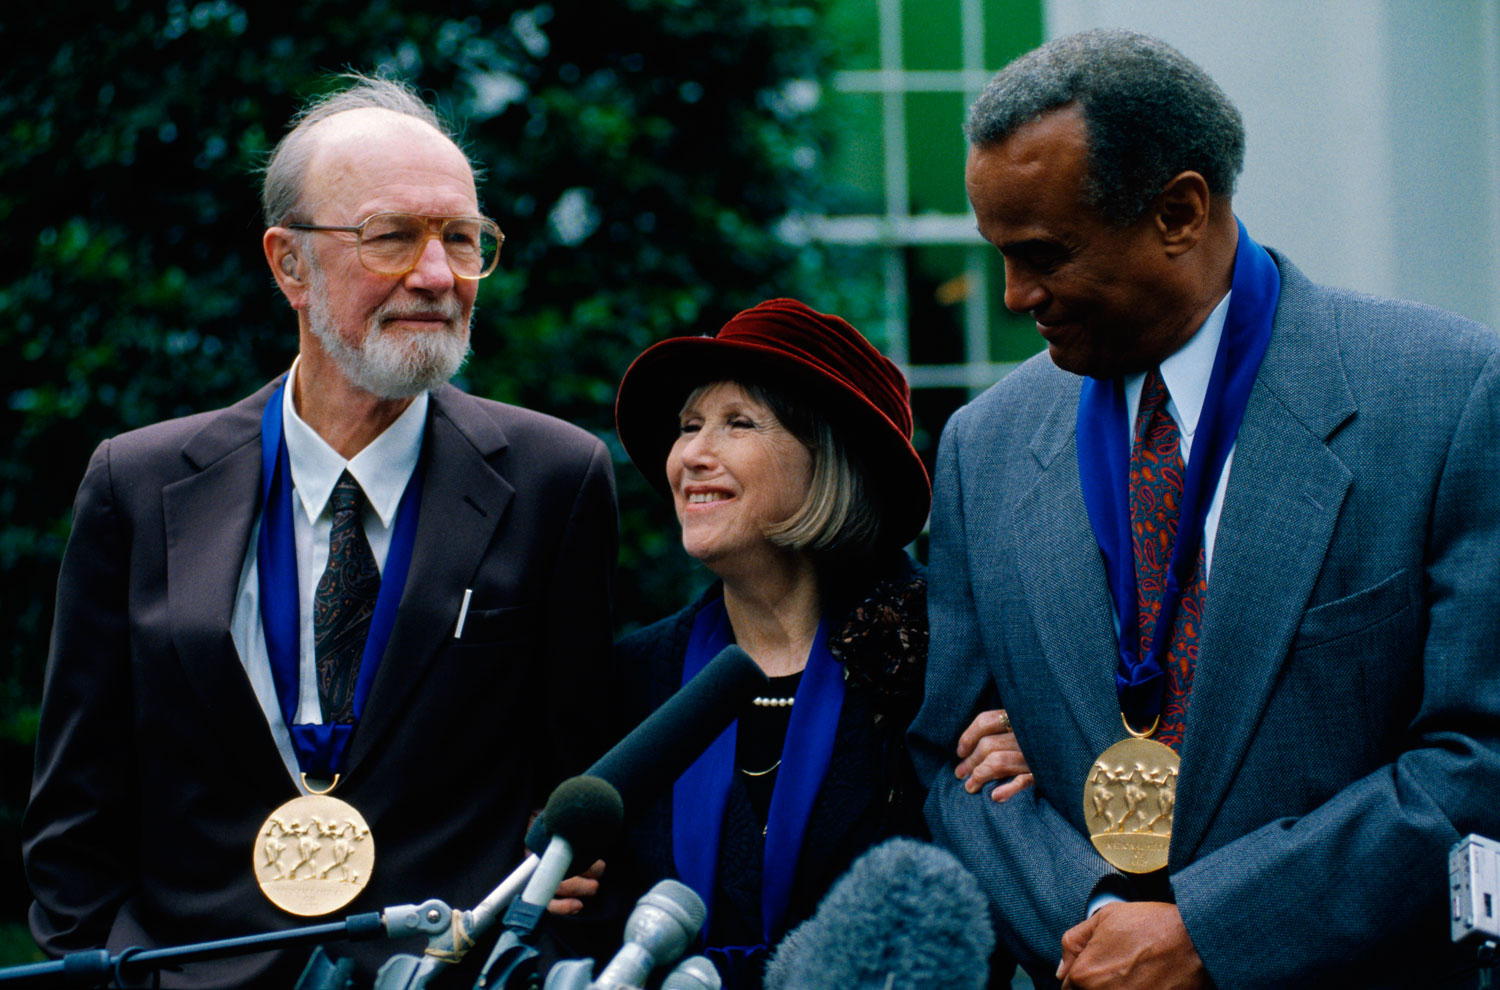 From left: Pete Seeger, actress Julie Harris, and actor Harry Belafonte speak at a press conference after being awarded the National Medal of Arts by President Clinton in Washington, D.C., on Oct. 14, 1994.